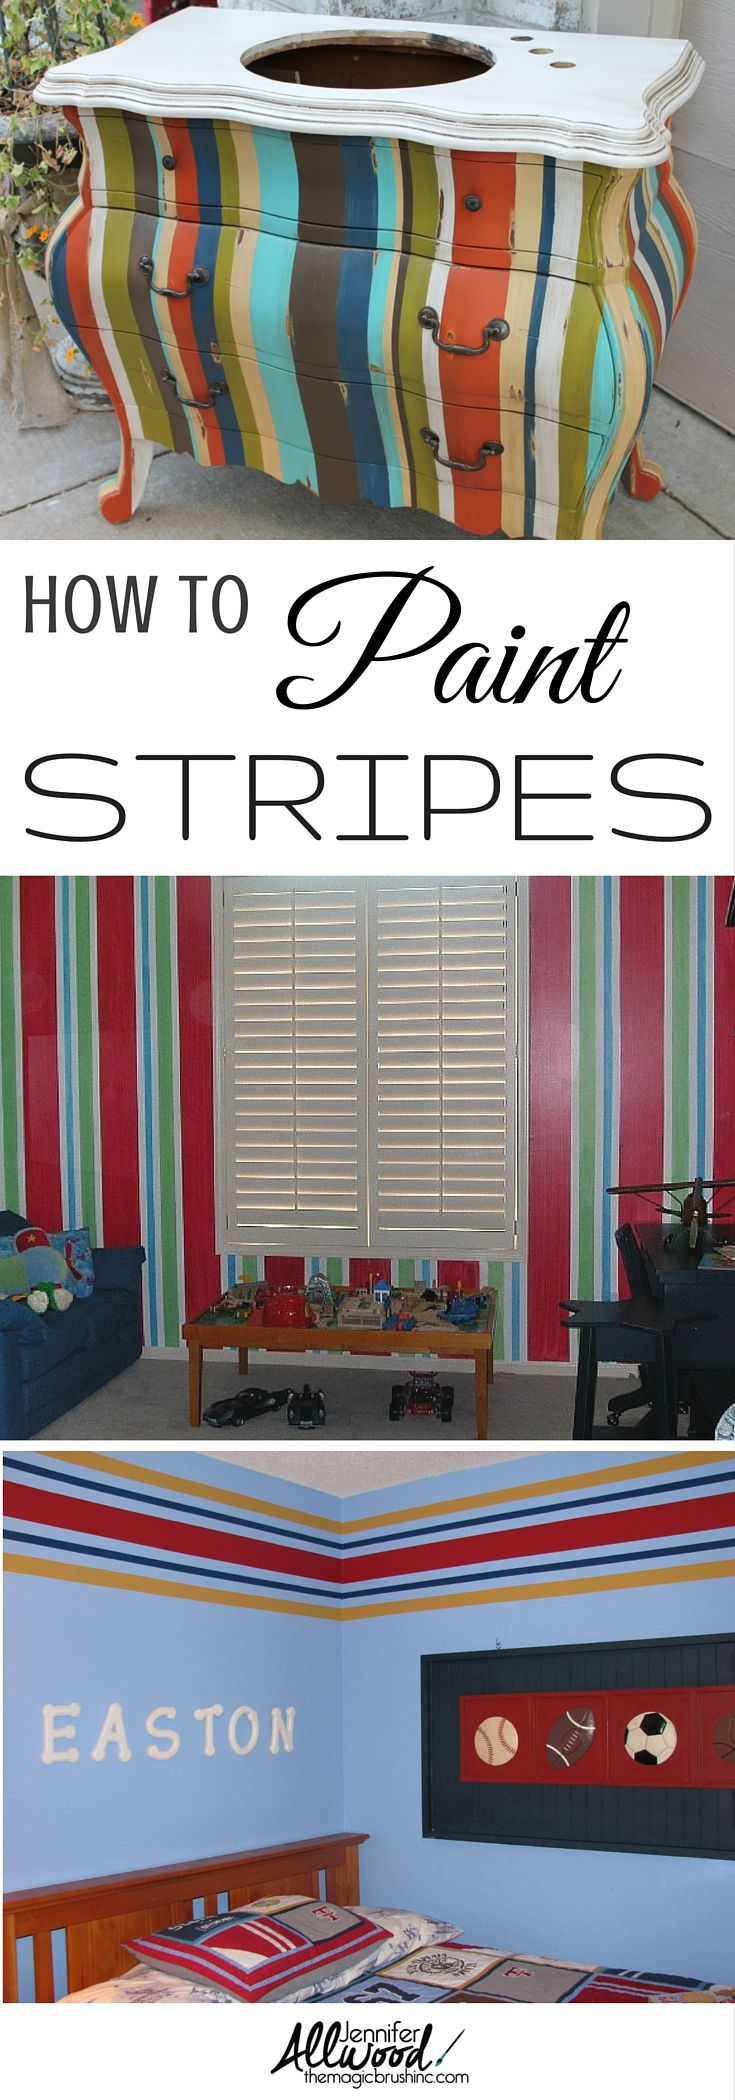 Stripes will always be fashionable! Here's some tips how to paint stripes and great ideas for DIY striped projects - furniture, walls, vanity, and more! From theMagicBrushing.com